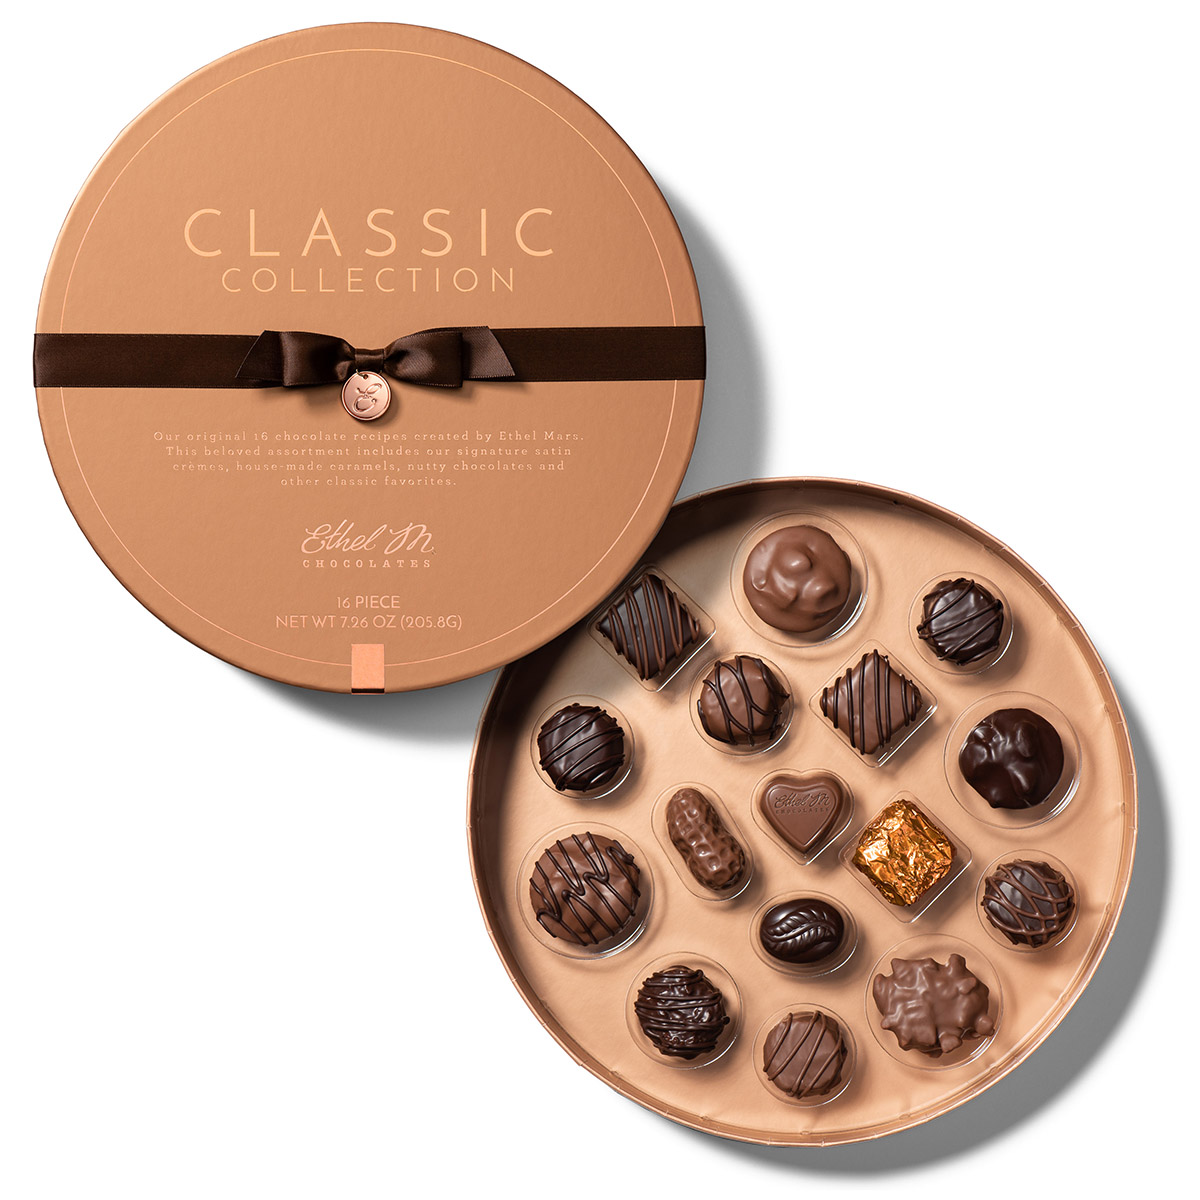 classic collection chocolate box